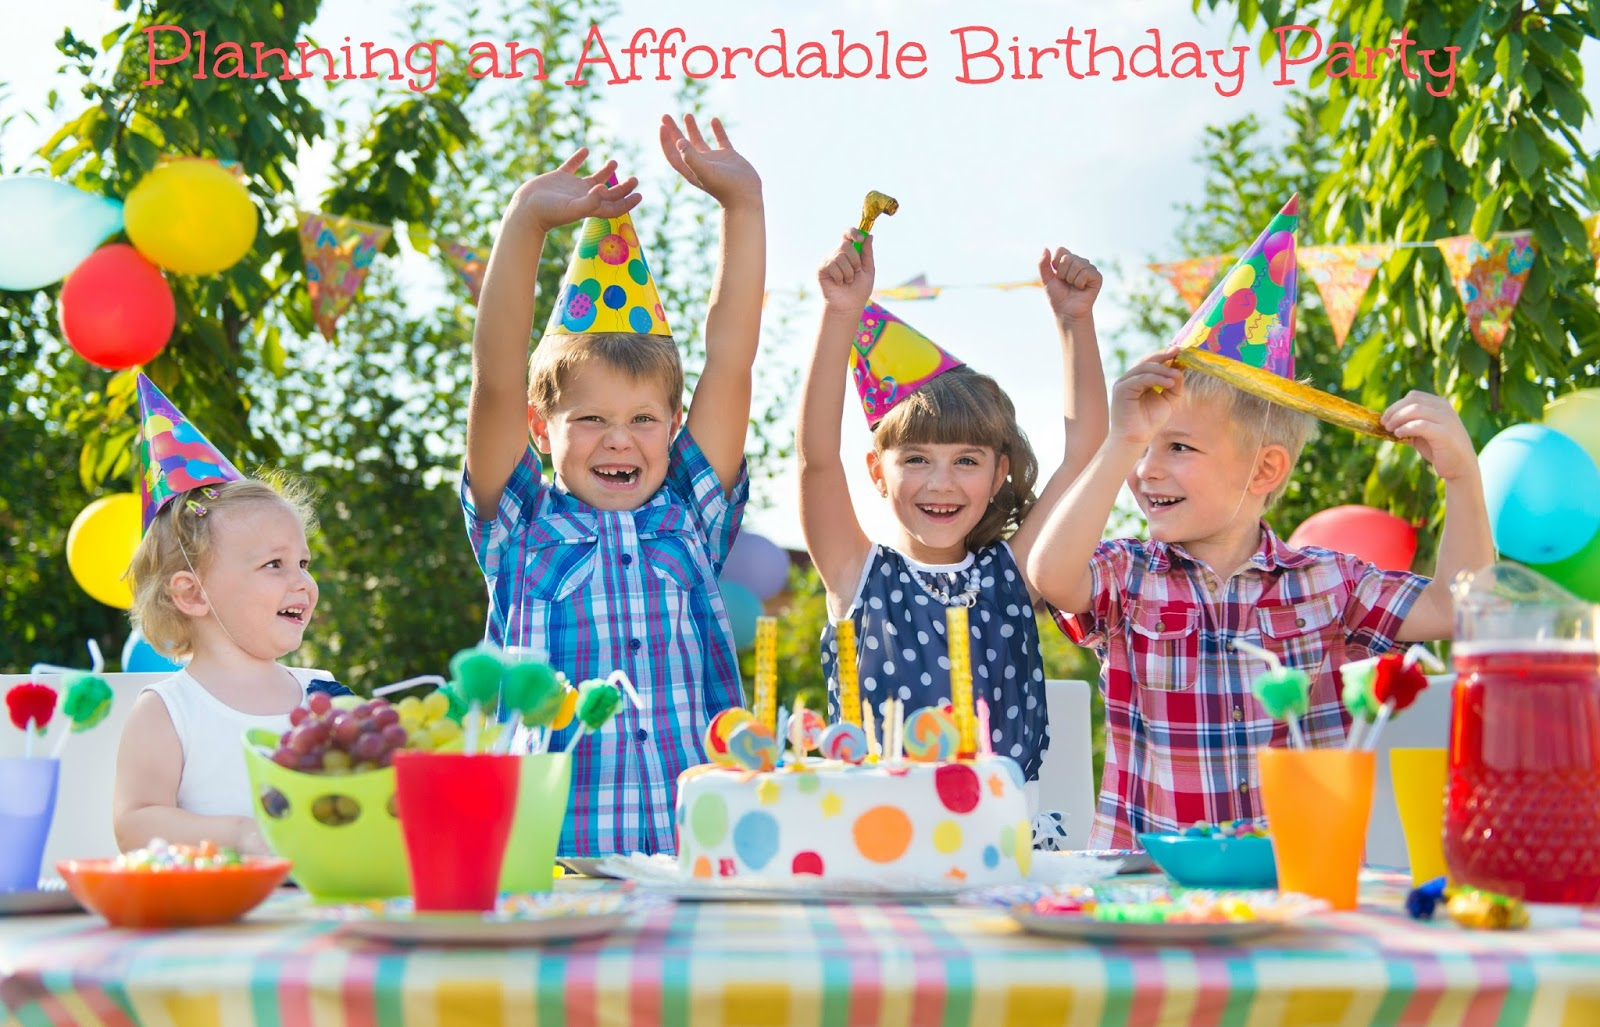 Learn how to plan an affordable birthday party.